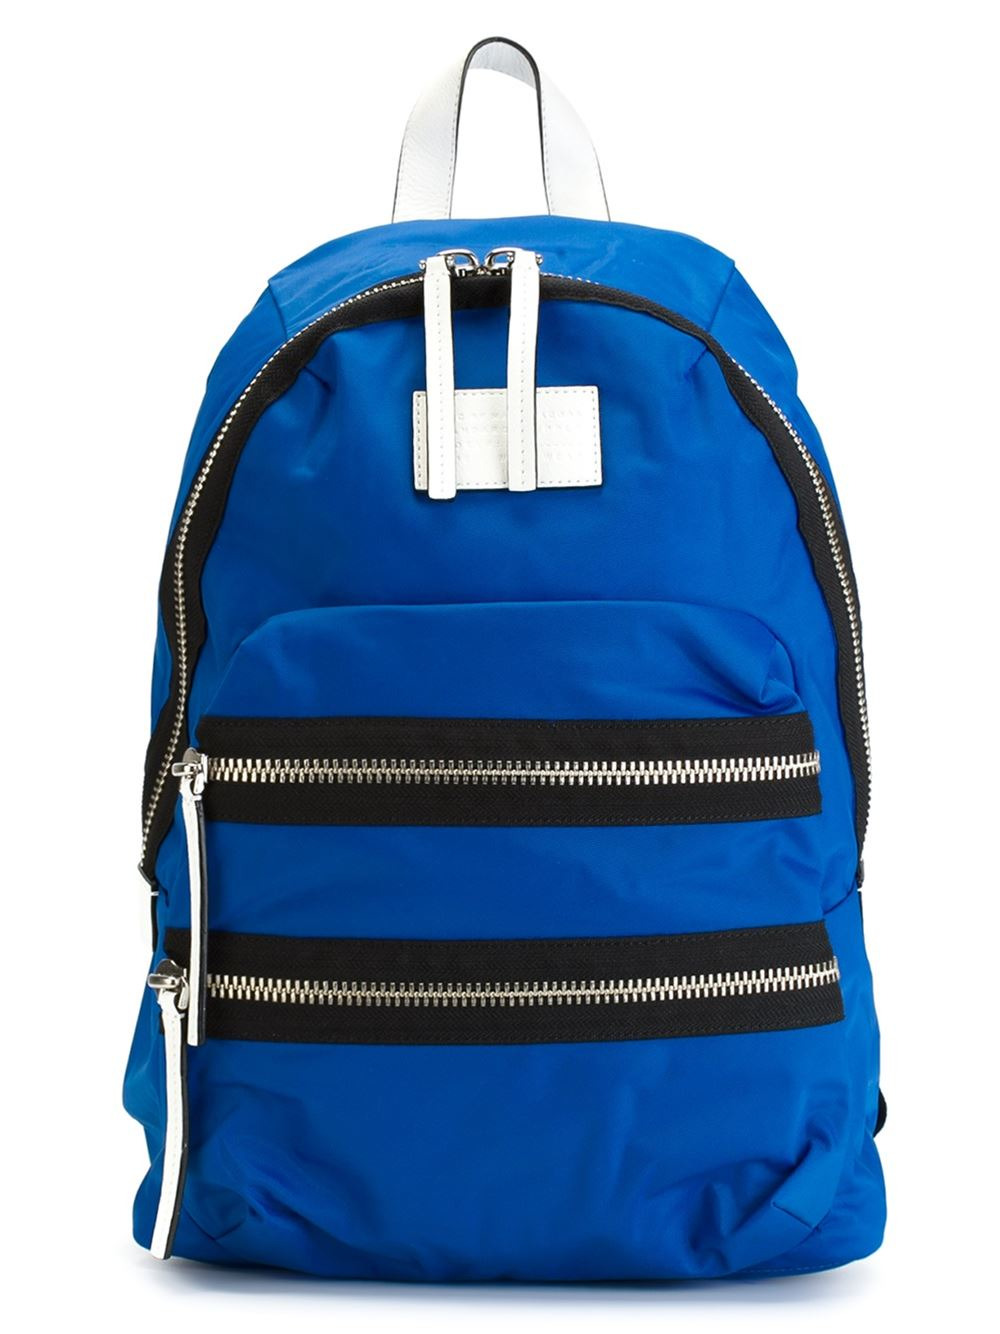 marc by marc jacobs 39 domo arigato packrat 39 backpack in blue lyst. Black Bedroom Furniture Sets. Home Design Ideas